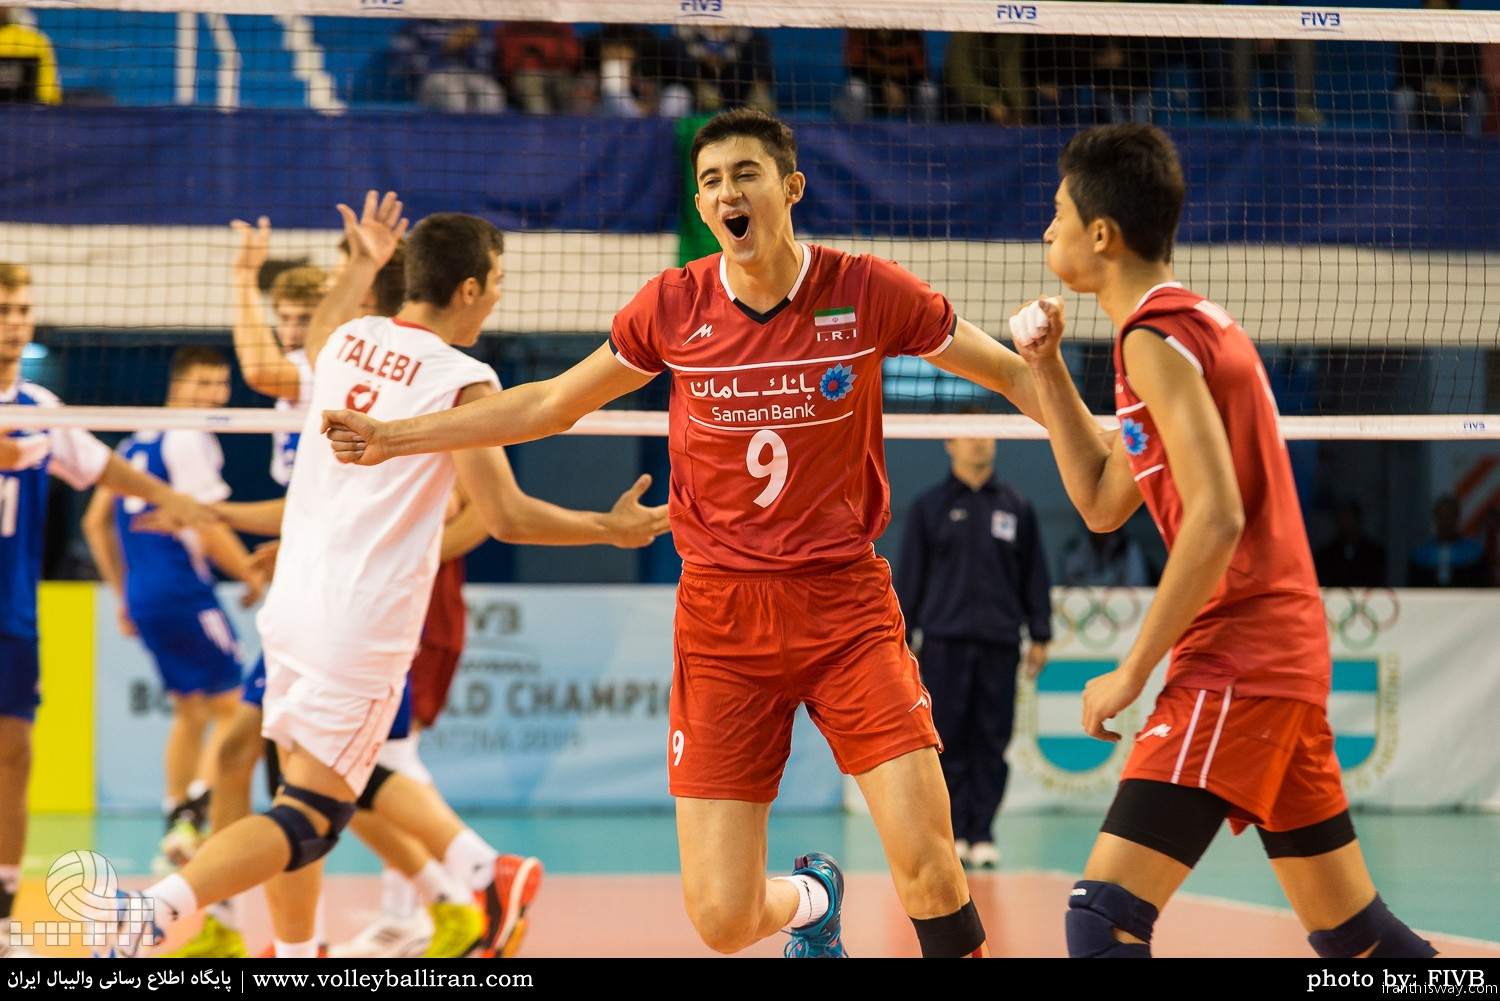 Iran U-19 team maintains 3rd place in World volleyball Ranking